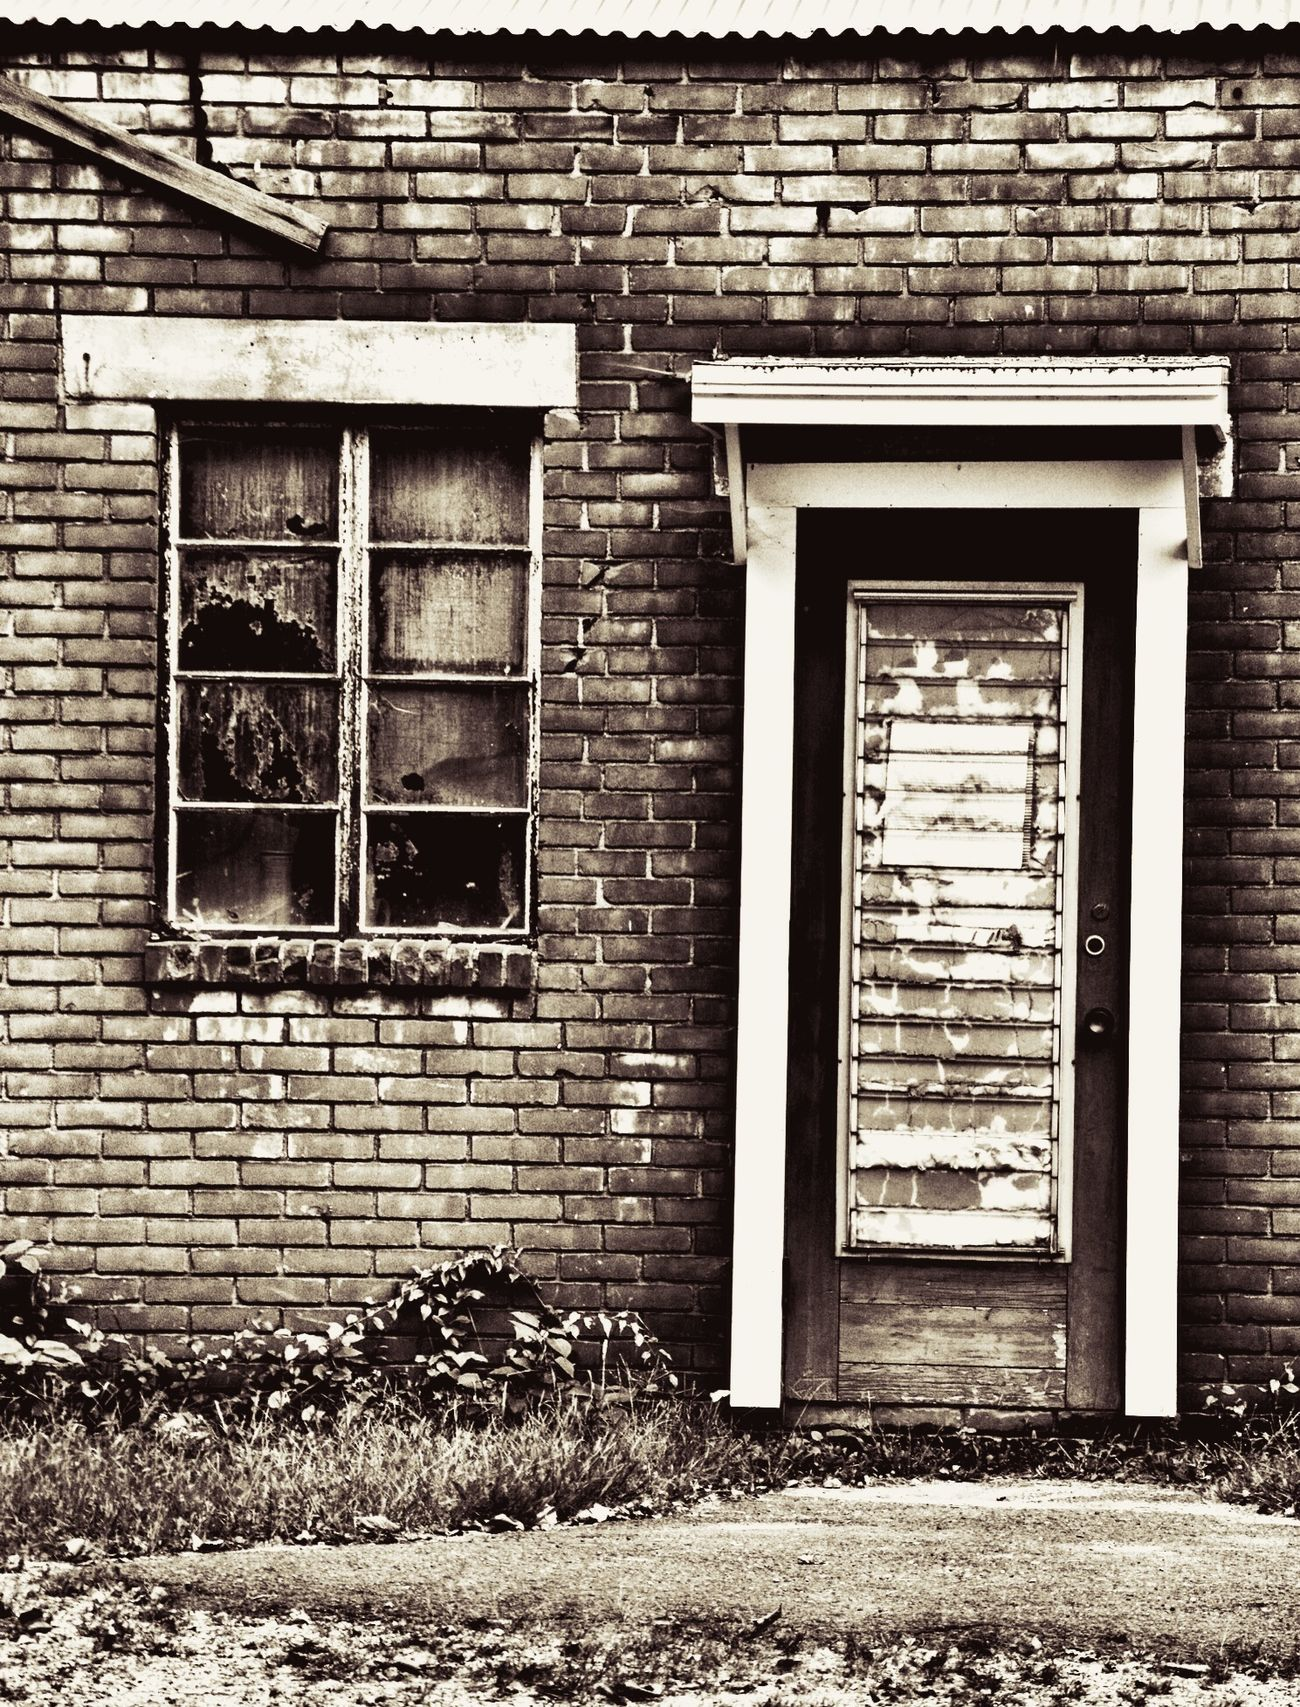 Grimescene Grimewindow Grimedoor Achromatic